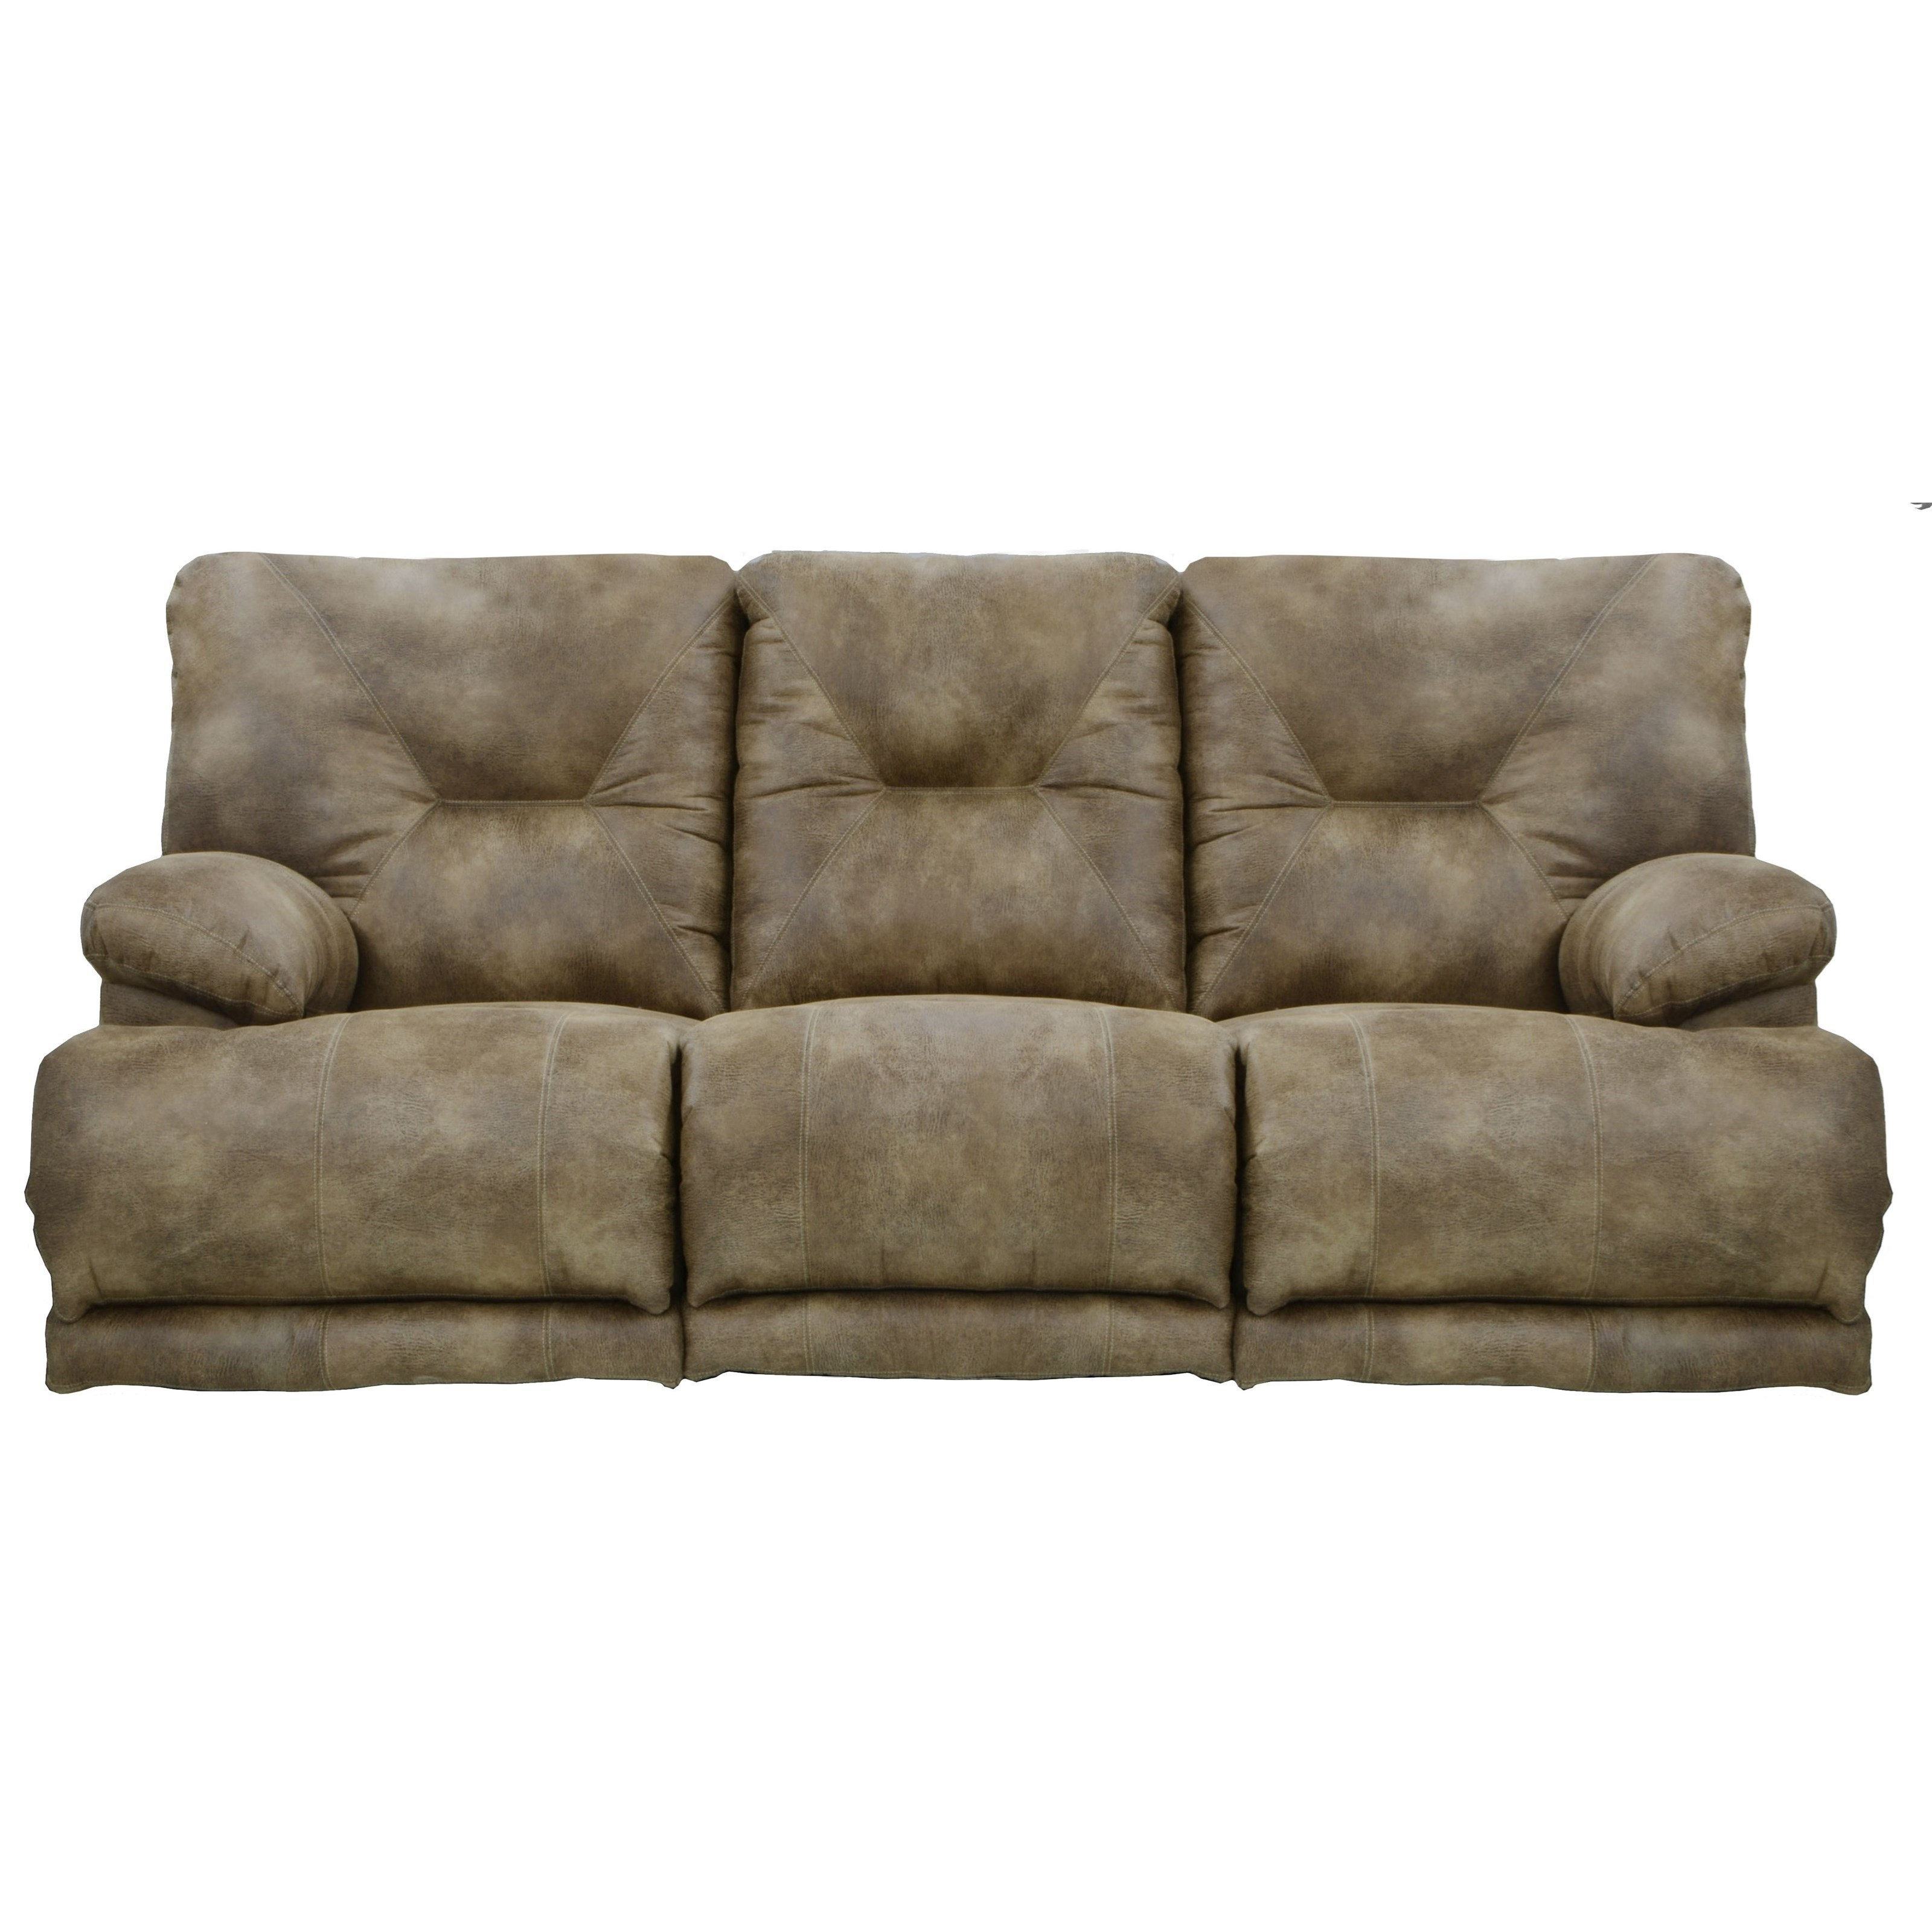 "Catnapper Voyager POWER ""Lay Flat"" Reclining Sofa - Item Number: 64381 1228-49-1328-49"